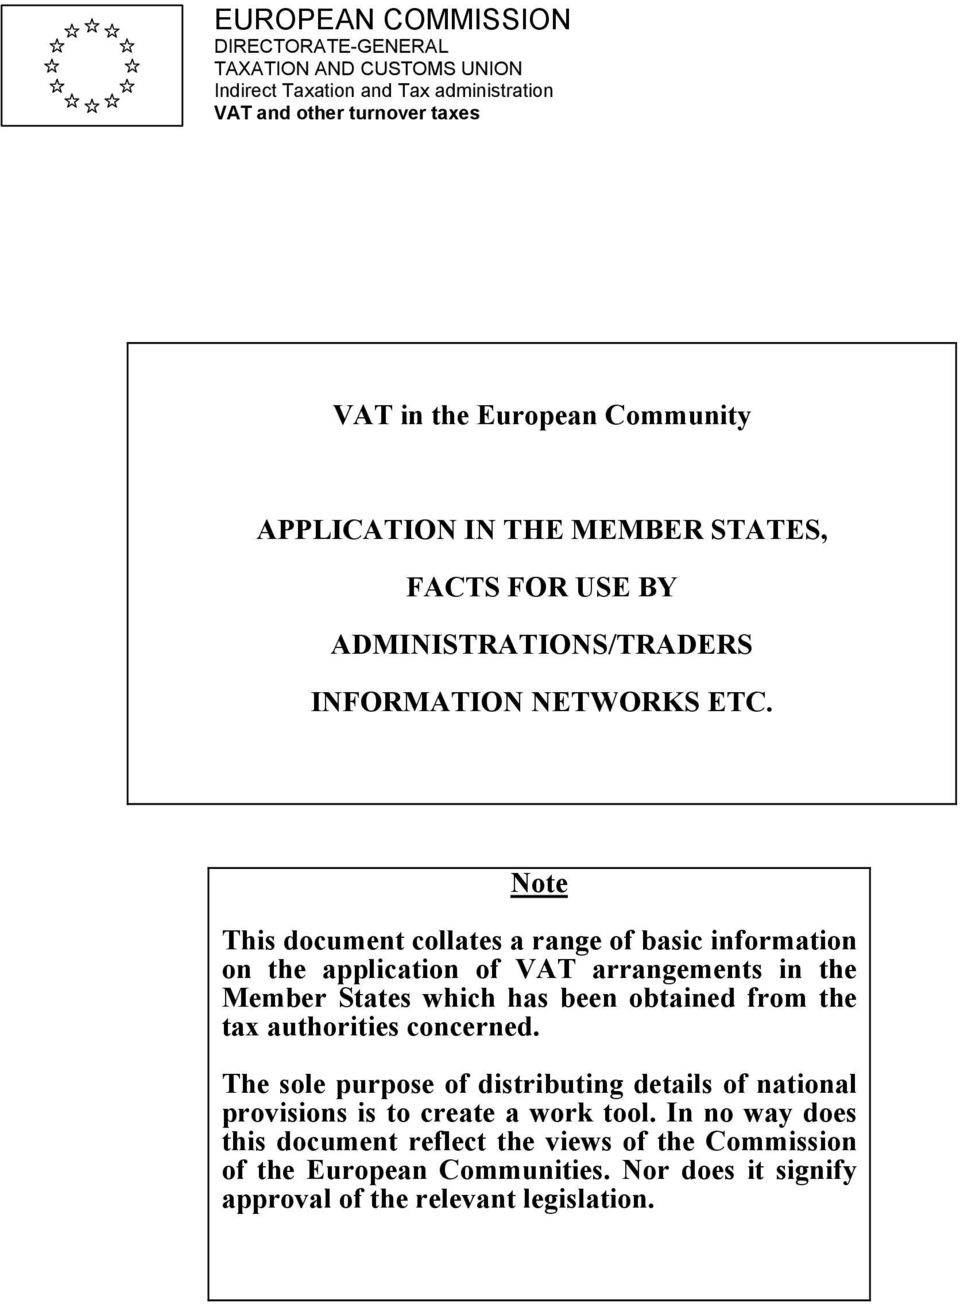 Note This document collates a range of basic information on the application of VAT arrangements in the Member States which has been obtained from the tax authorities